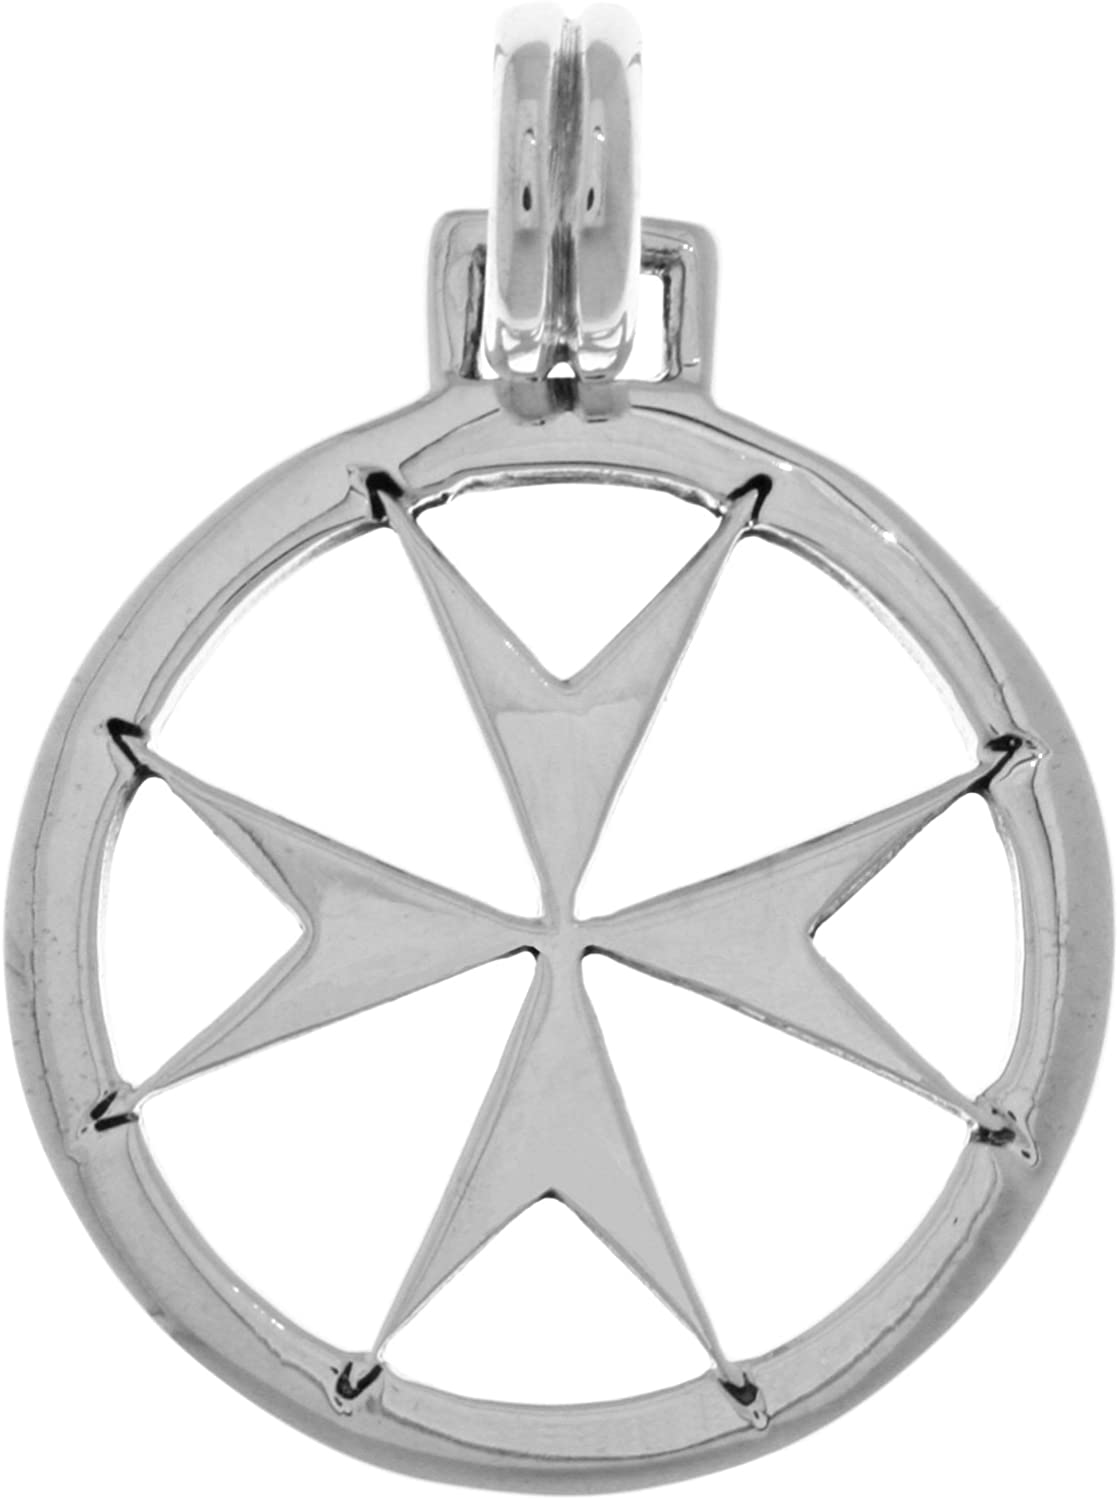 Jewelry New popularity Trends Maltese Templar Silver New Shipping Free Shipping Pendant Cross Sterling